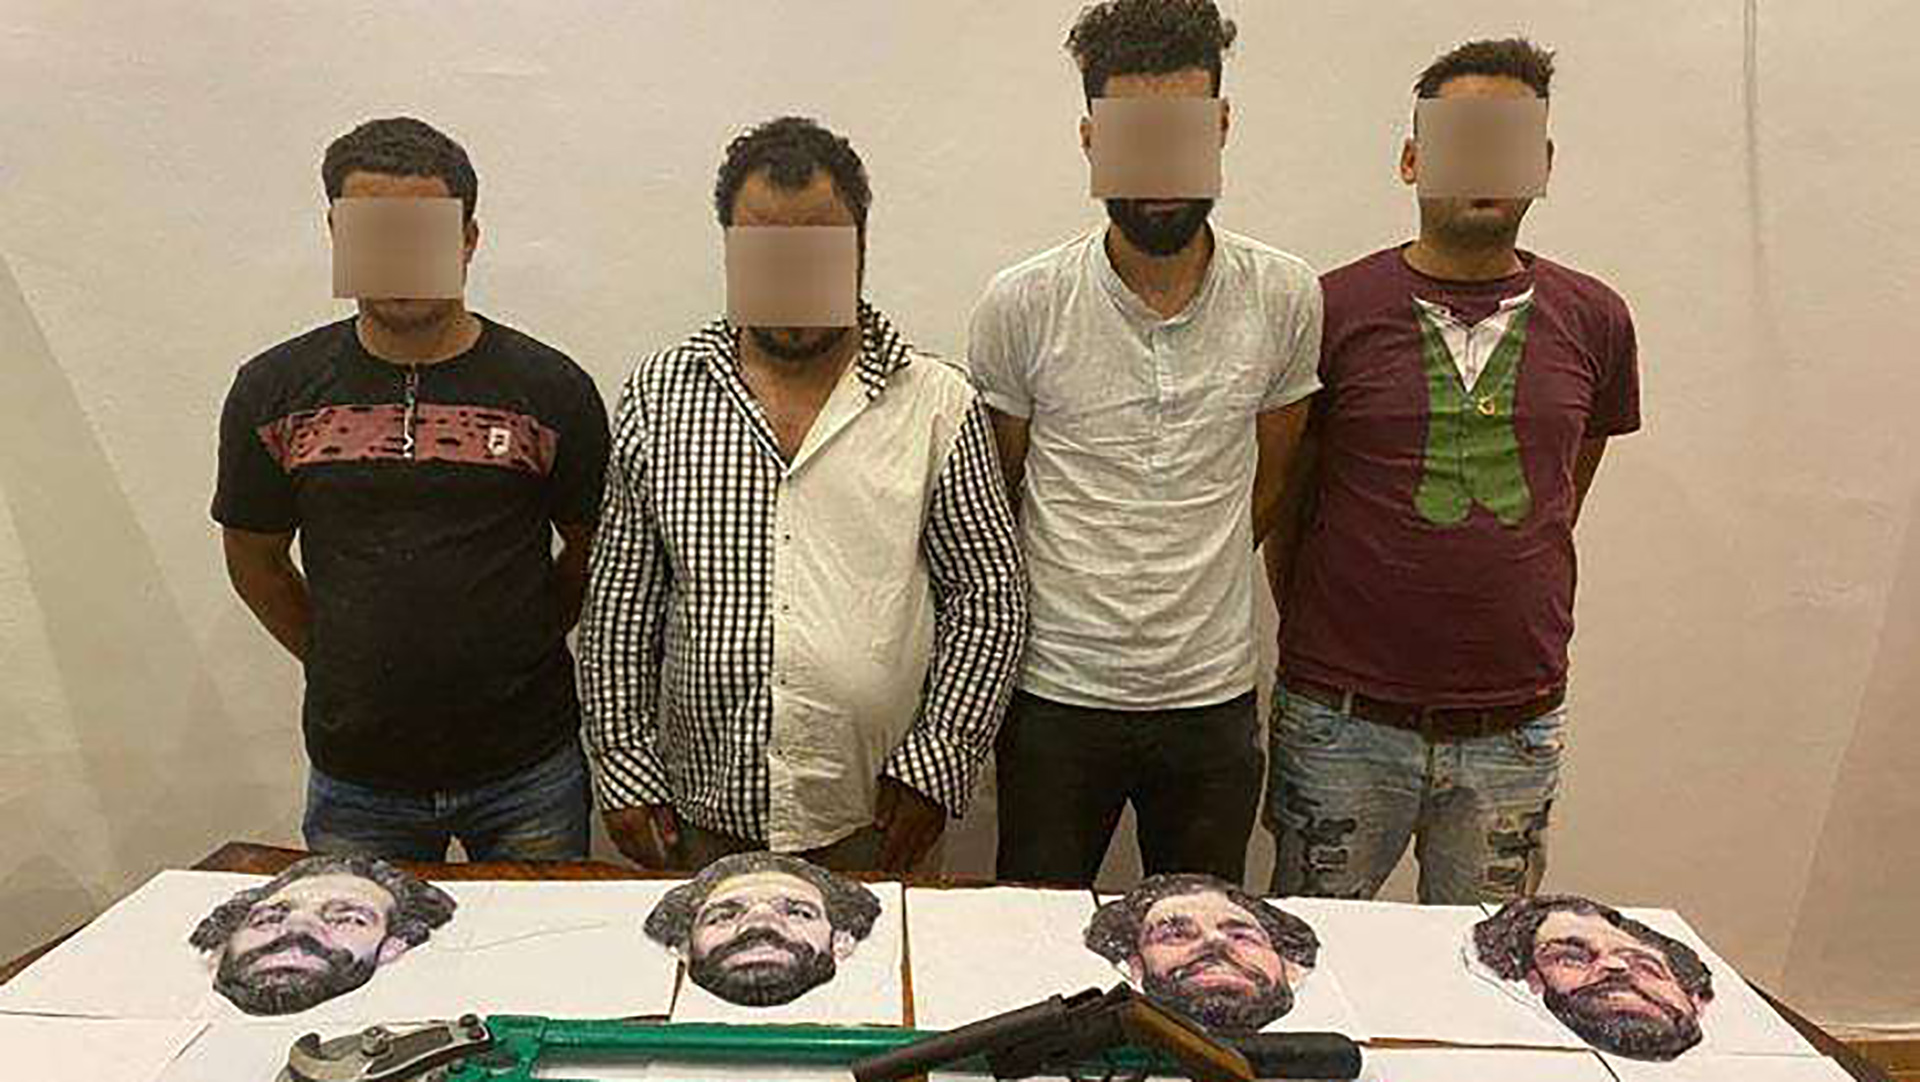 Salah mask-wearing robbers caught by Egyptian police | Goal.com